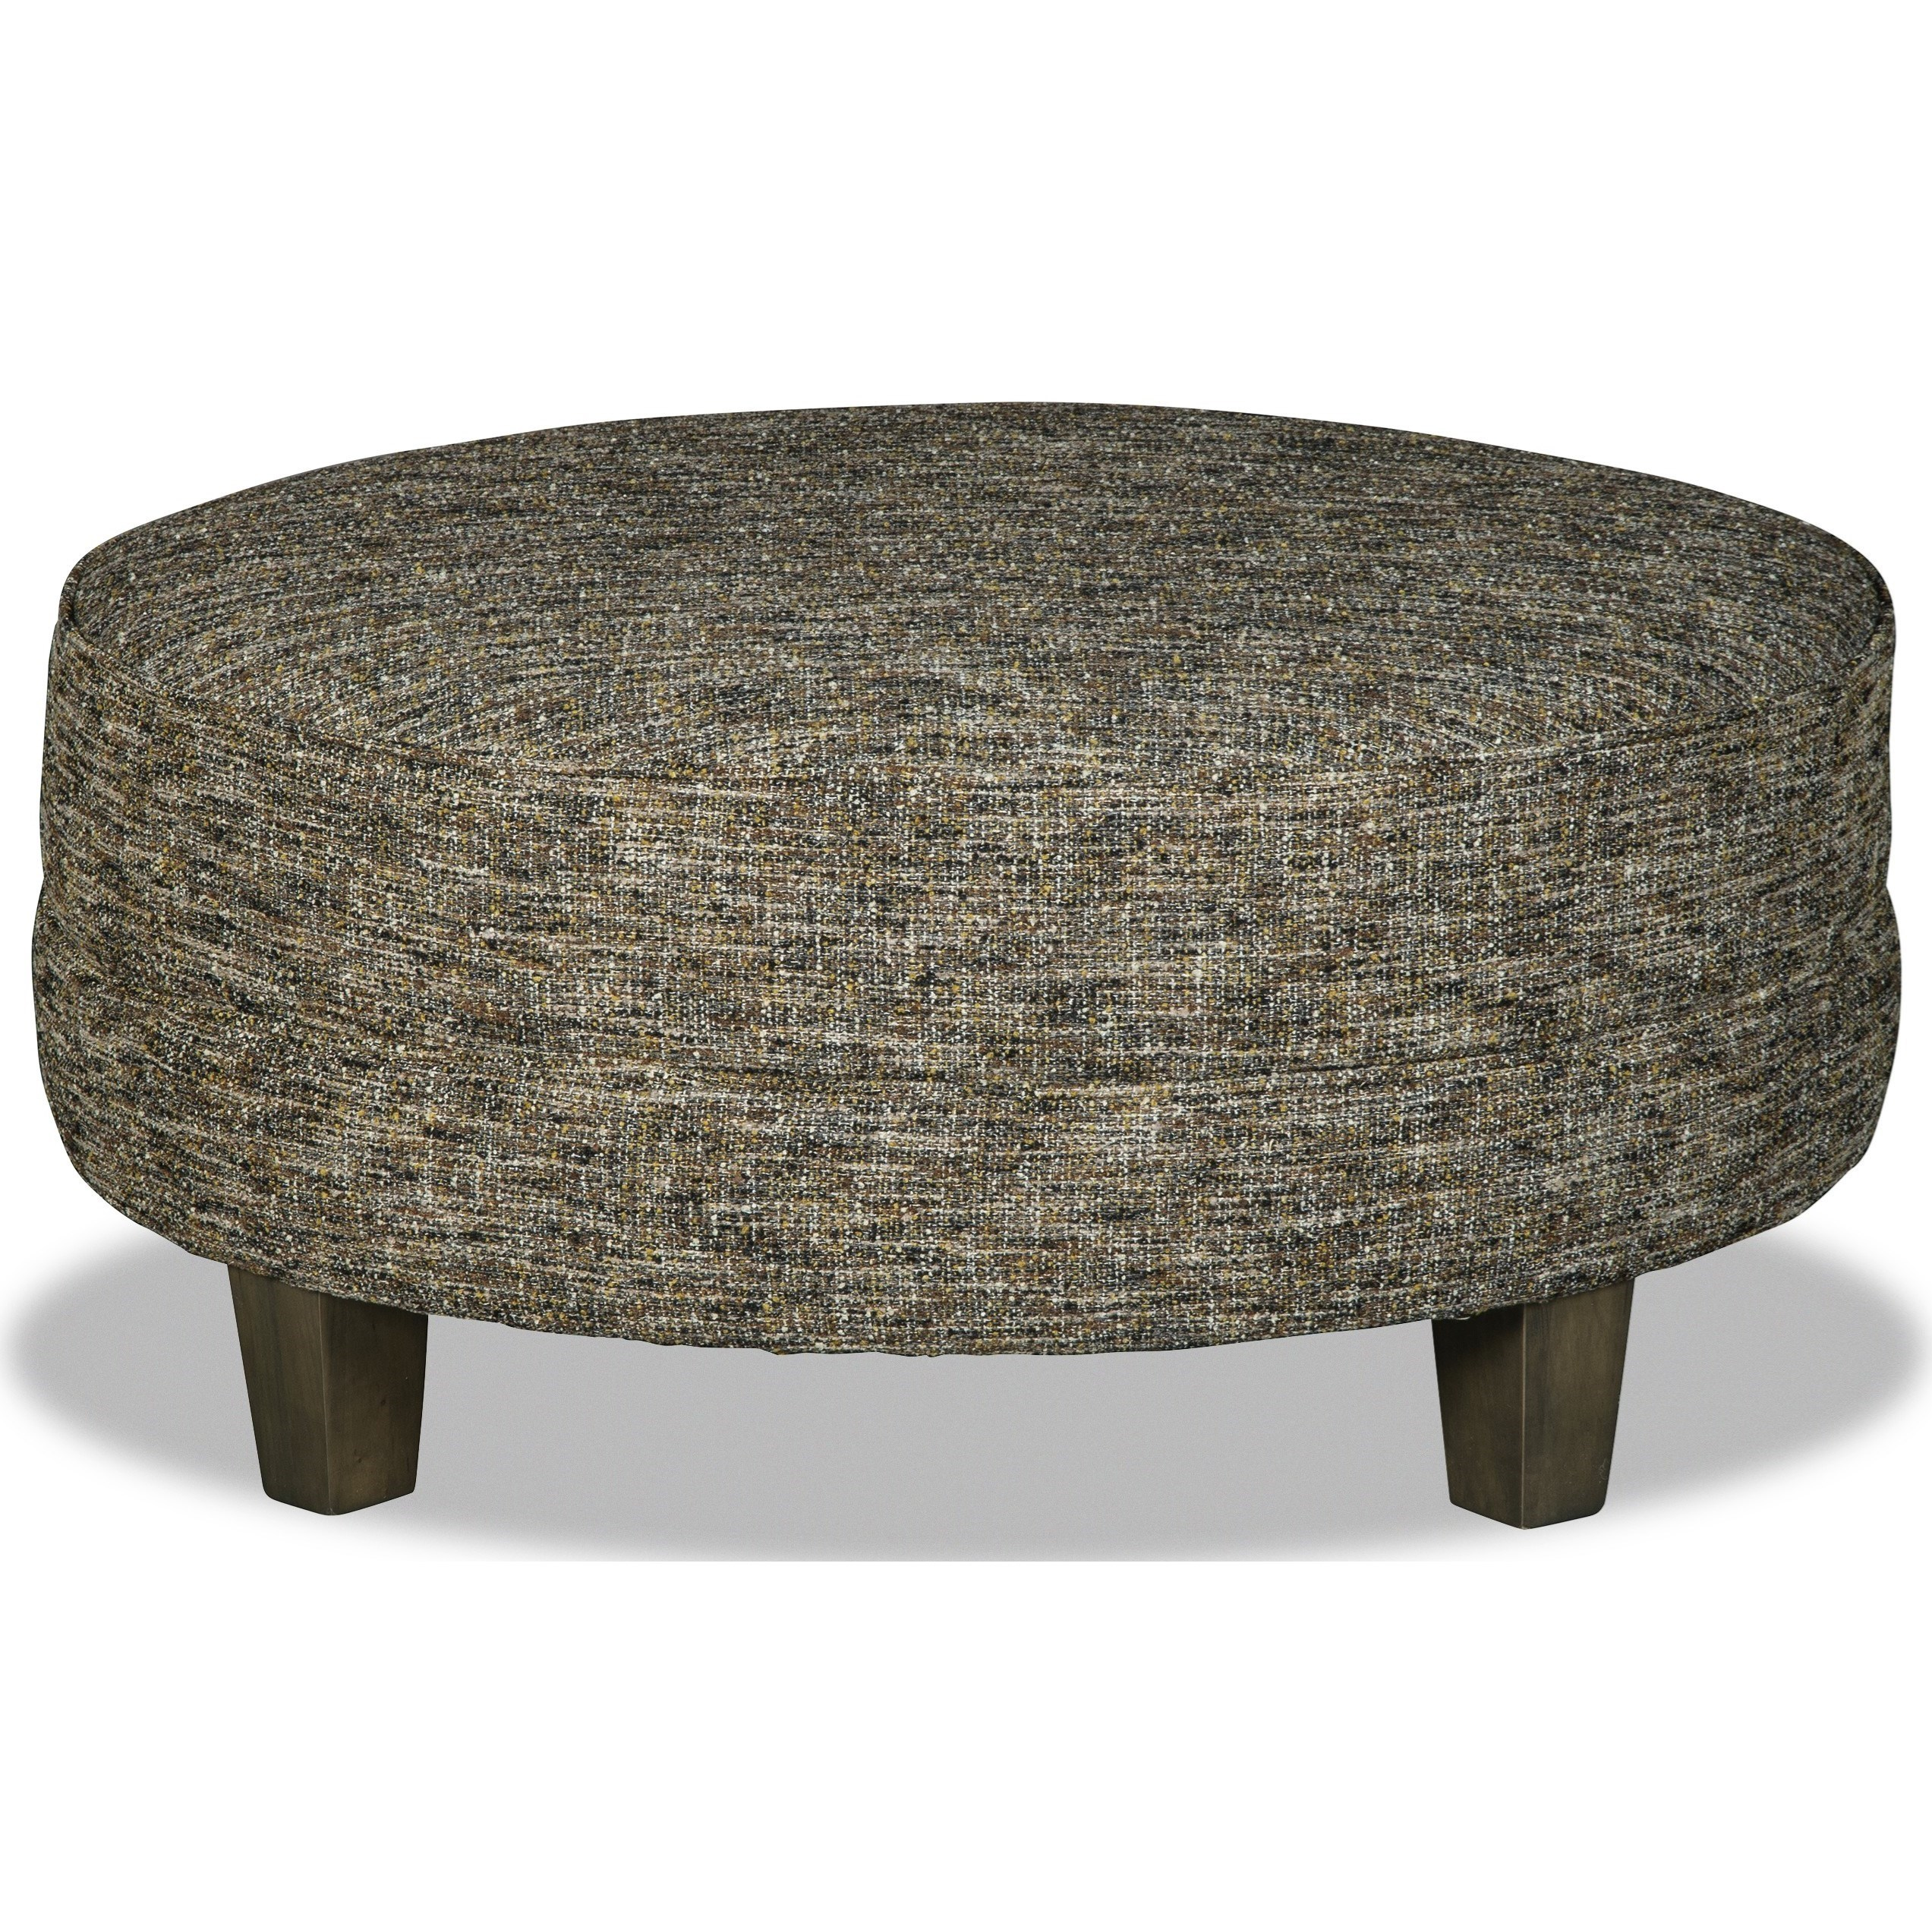 M9 Custom - Design Options Customizable Large Round Cocktail Ottoman by Hickorycraft at Johnny Janosik